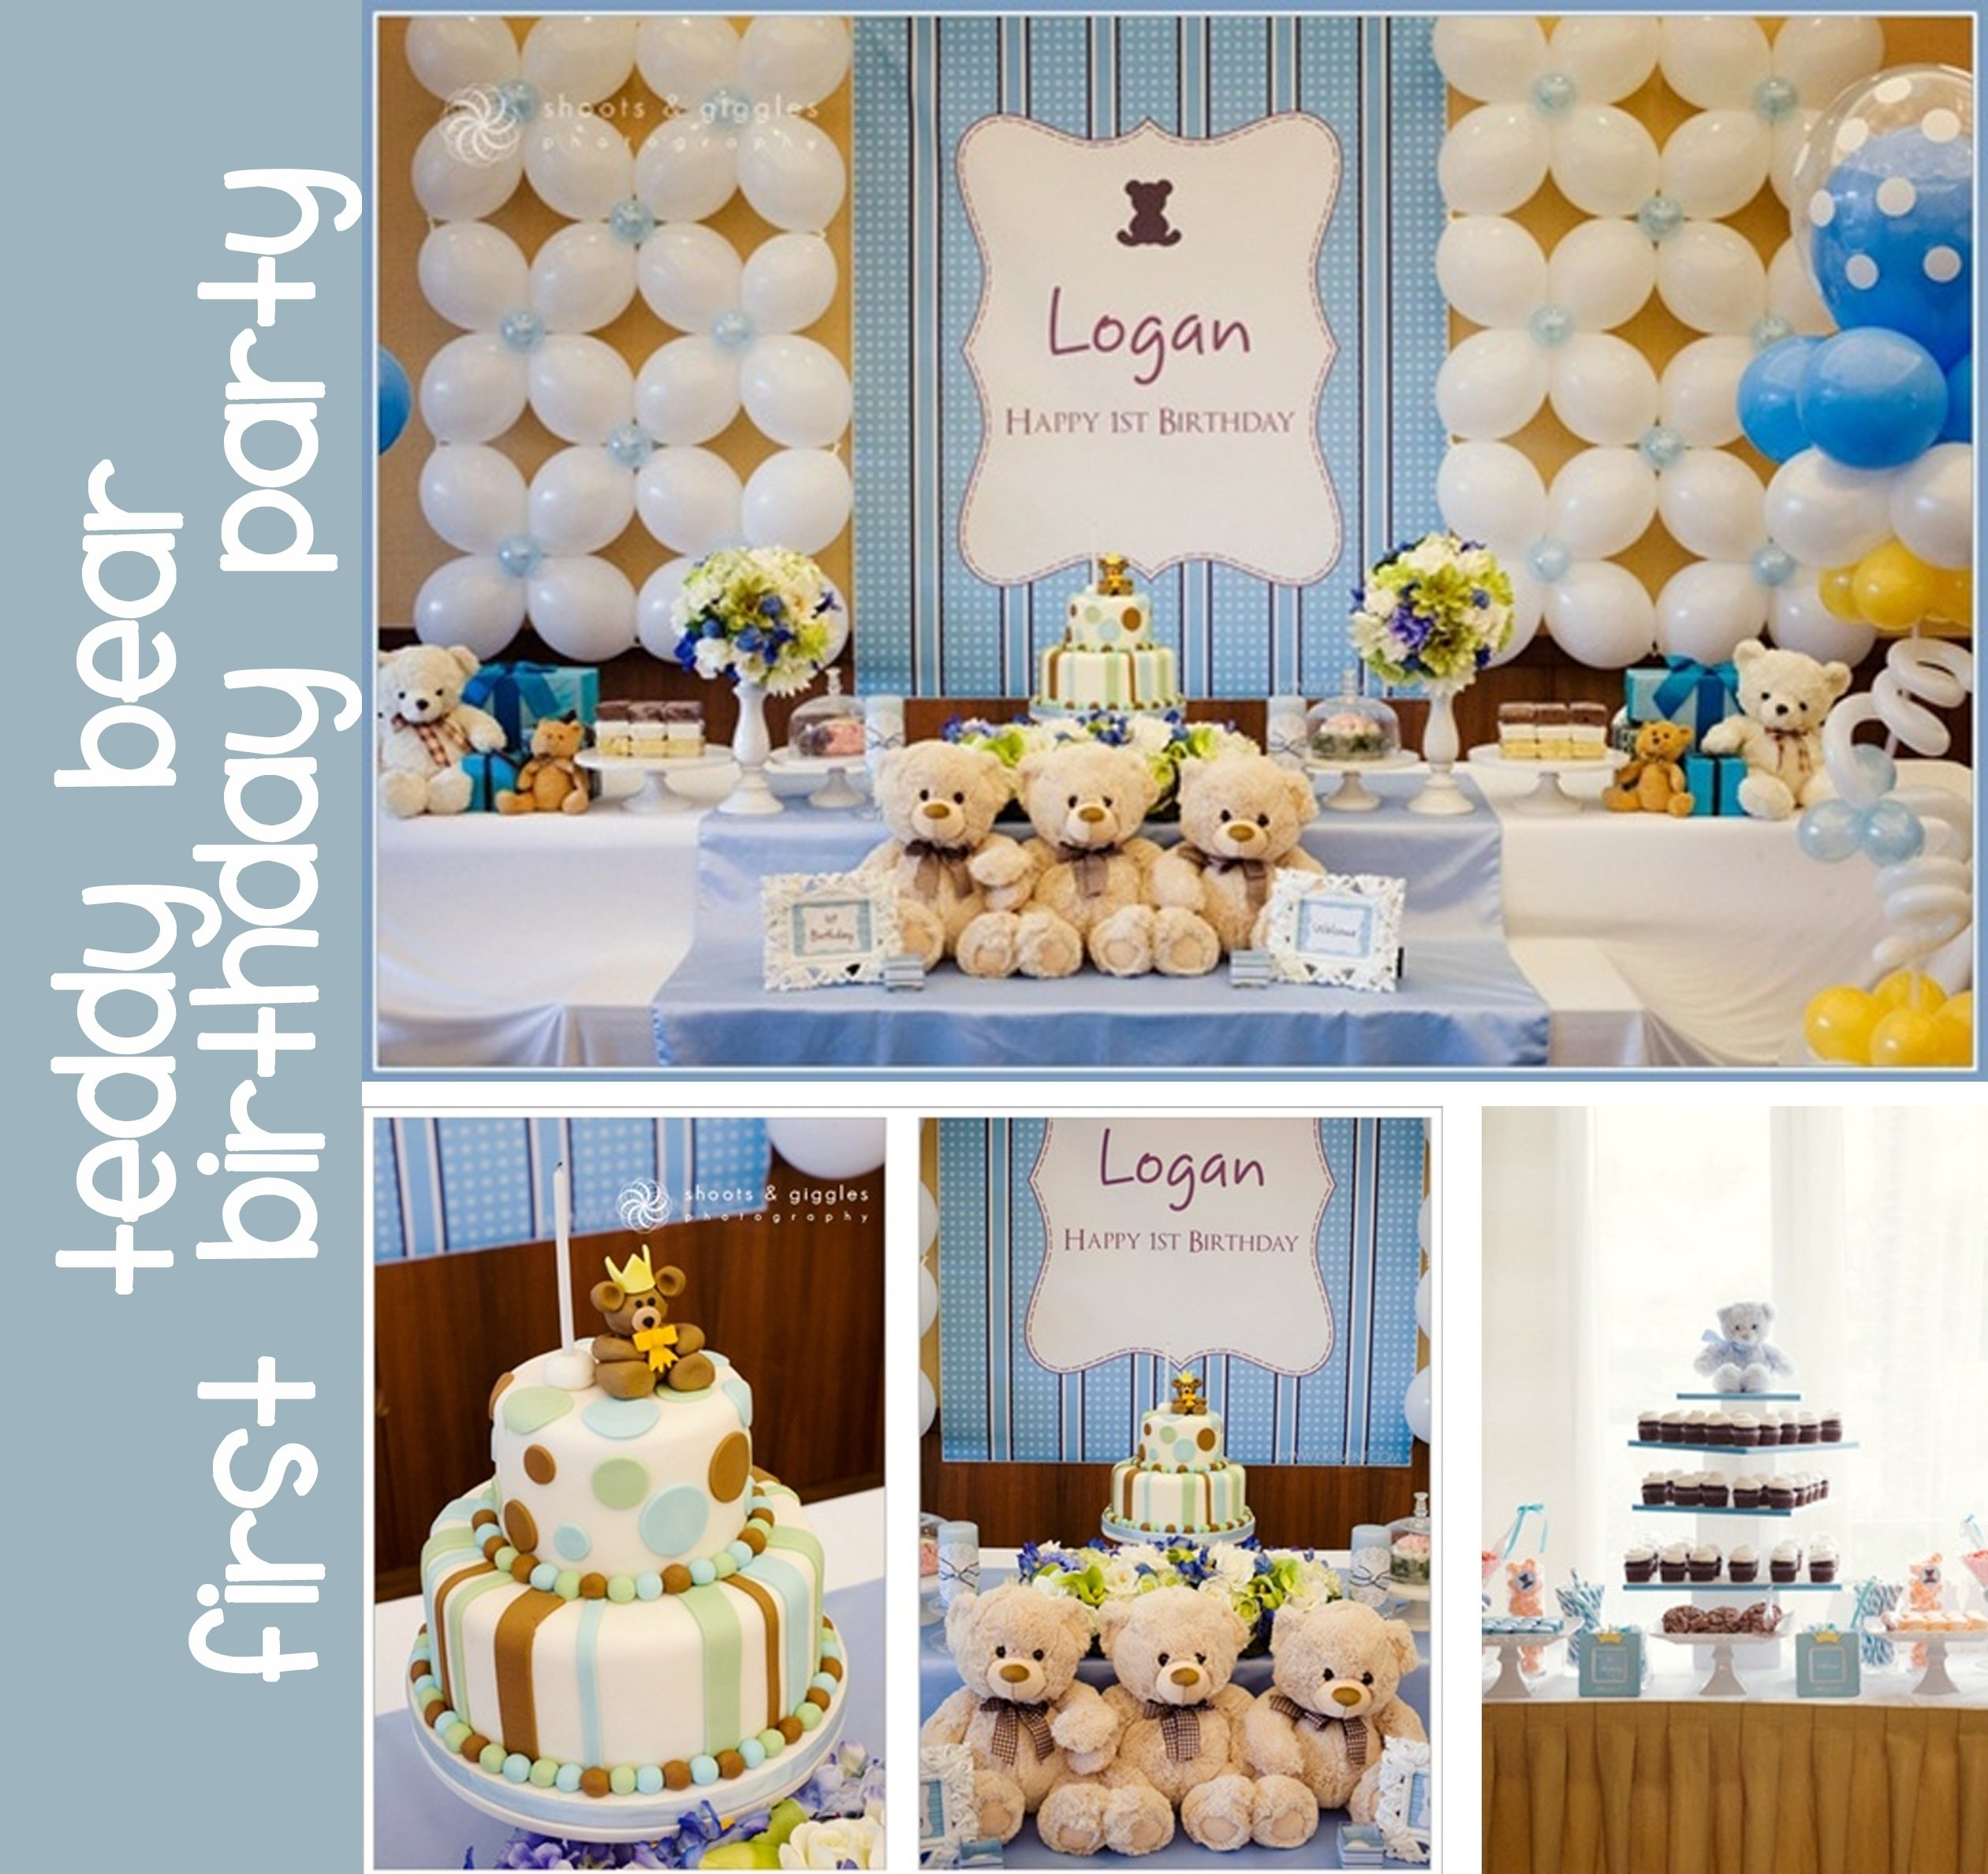 10 Stunning 1St Birthday Ideas For Boys baby first birthday ideas for boy first birthday teddy bear theme 1 2021